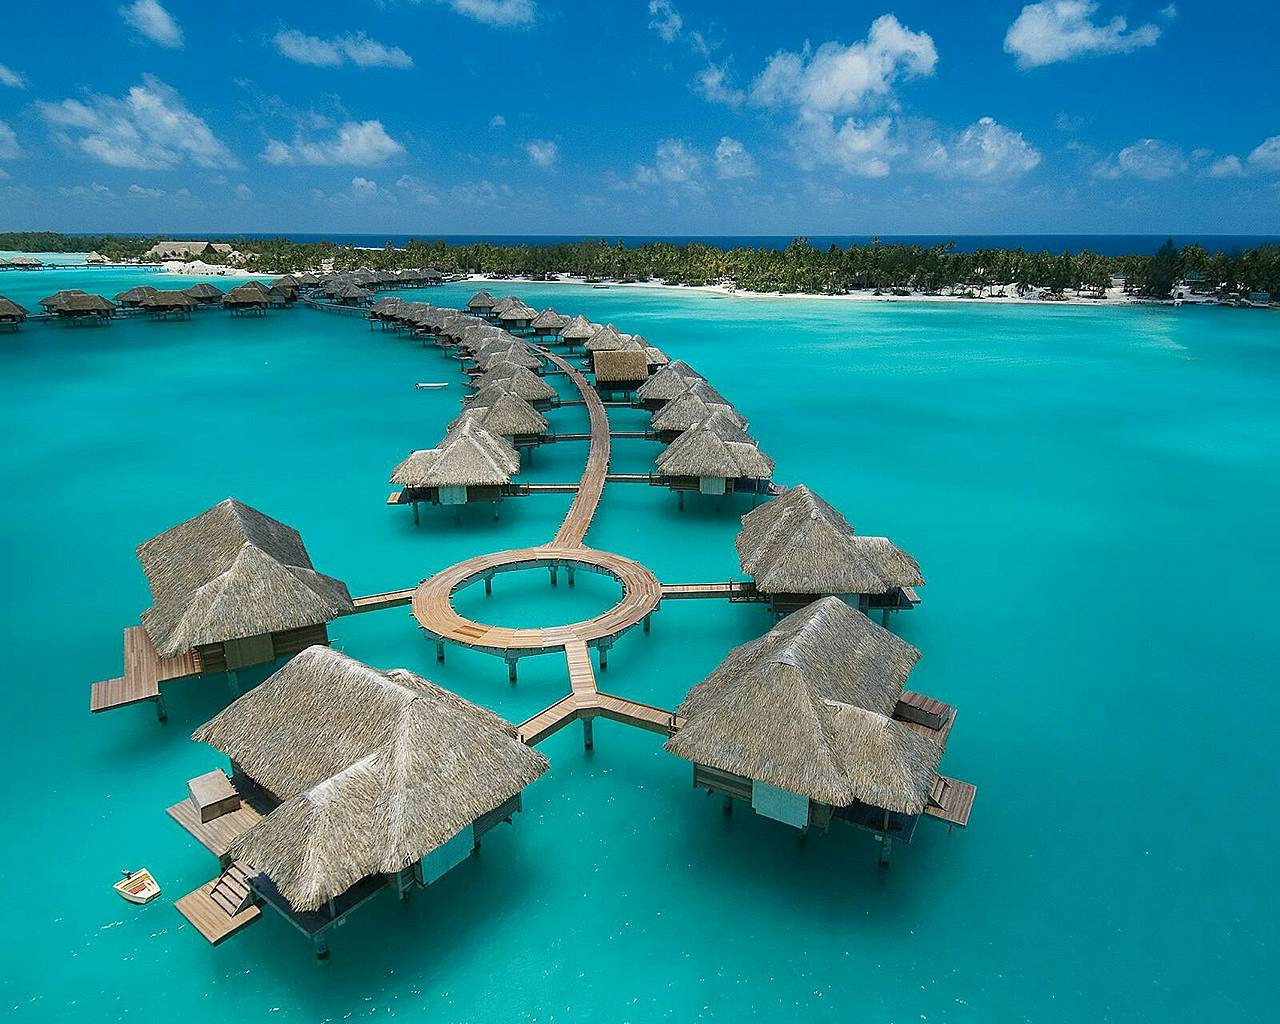 pictures bora bora french polynesia amazing funny beautiful nature travel and much more. Black Bedroom Furniture Sets. Home Design Ideas